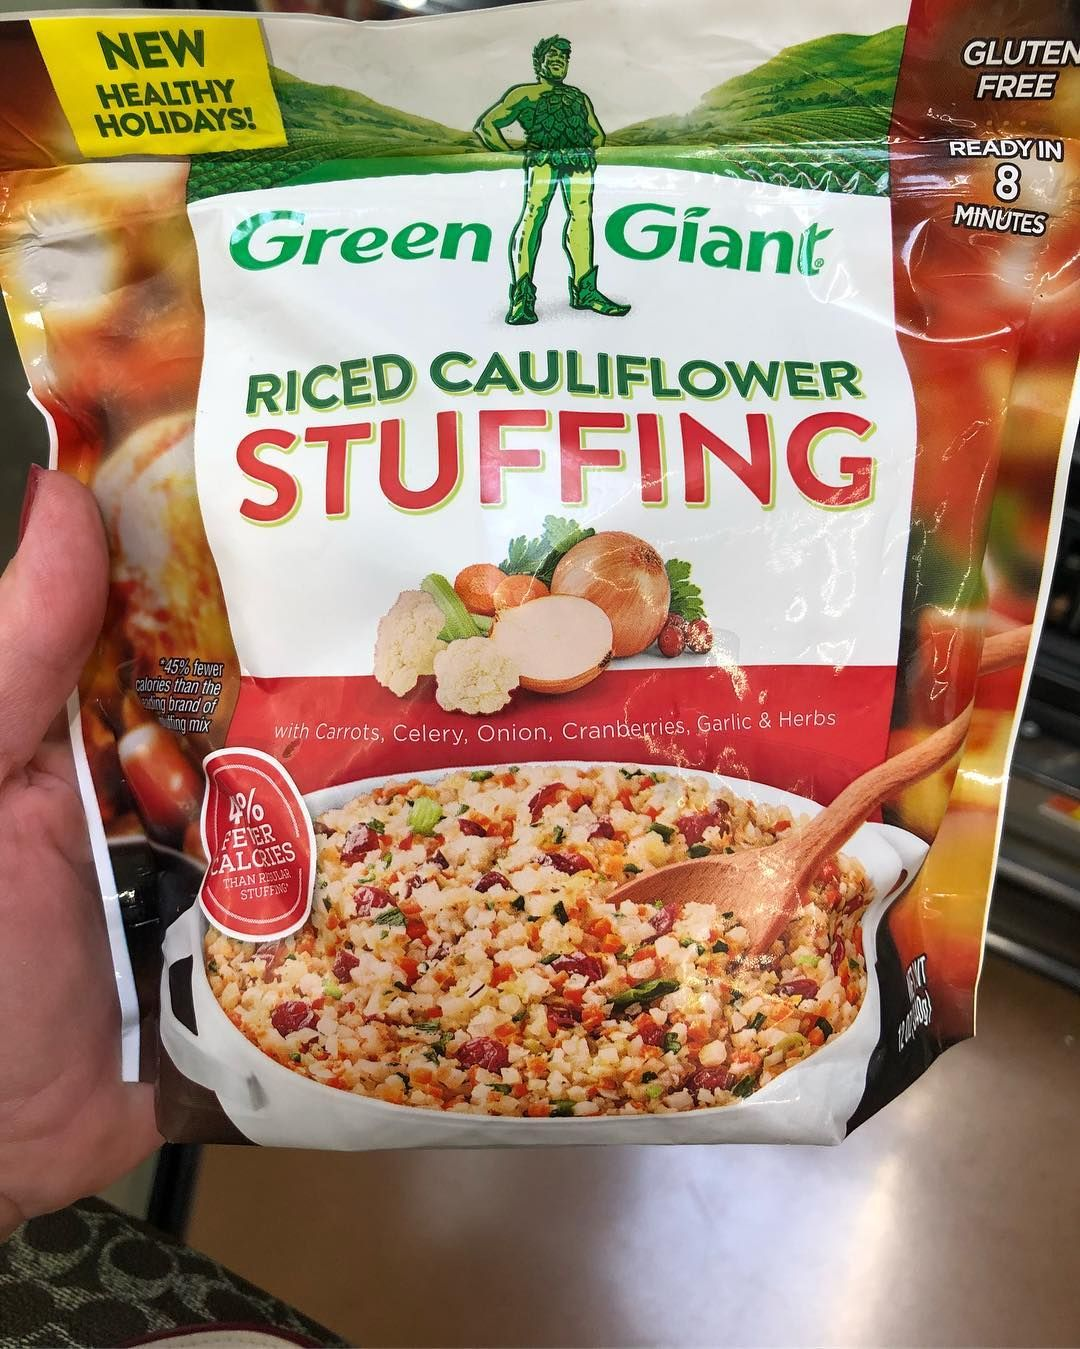 Green Giant added Riced Cauliflower Stuffing to its line